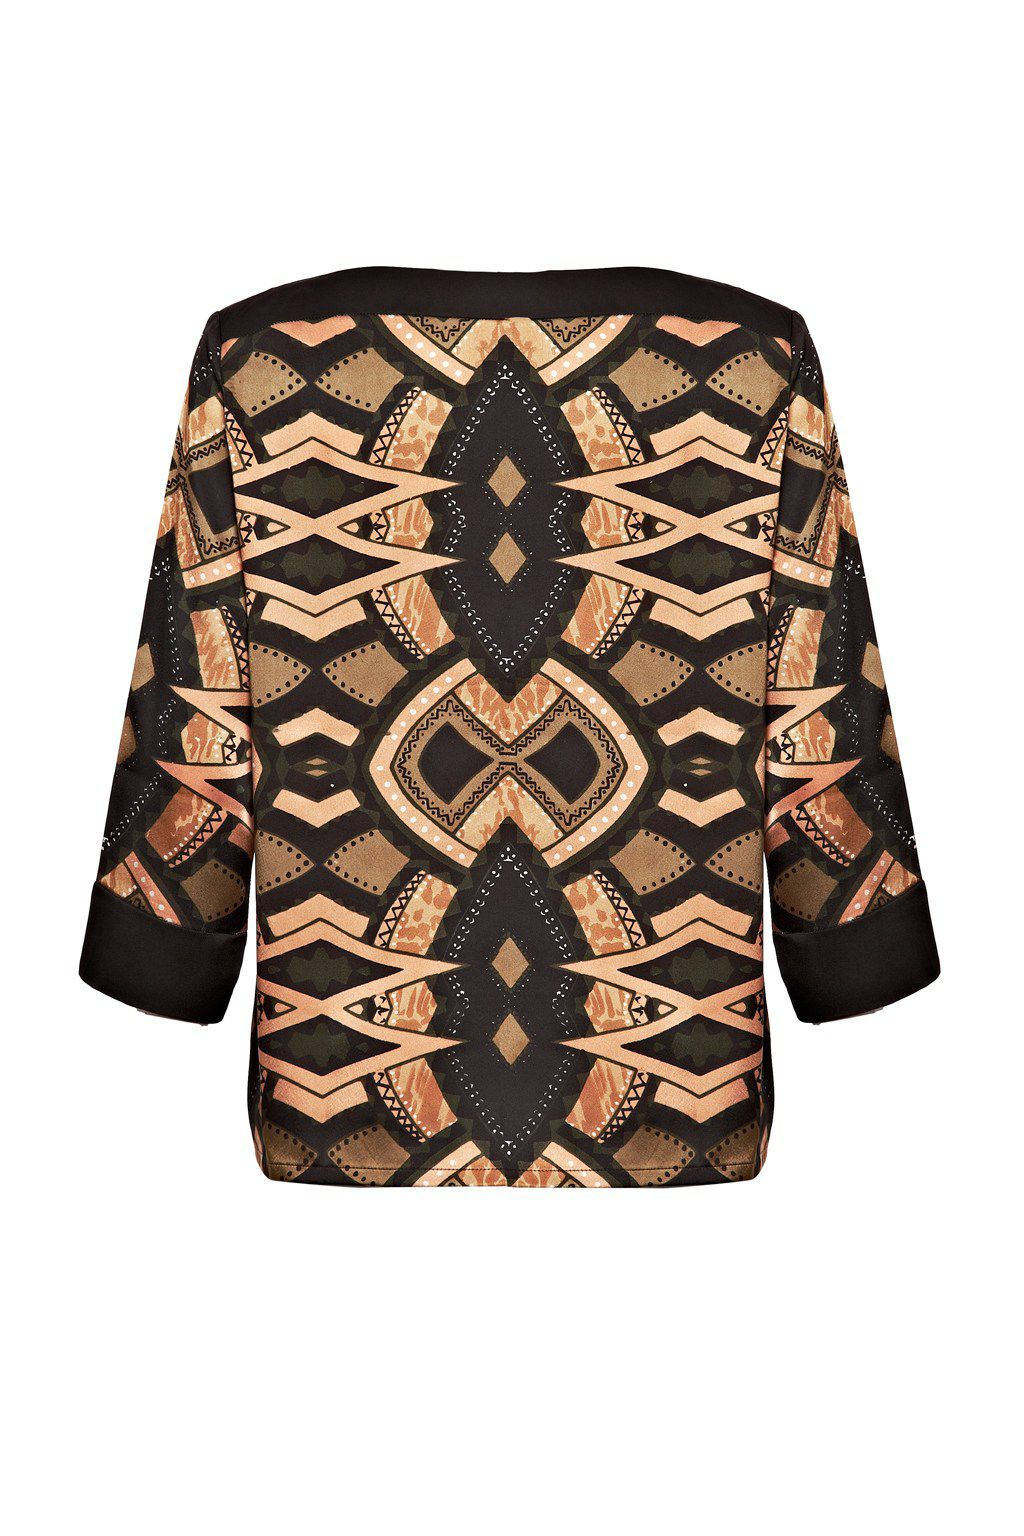 Totem contrast 3/4 sleeve top